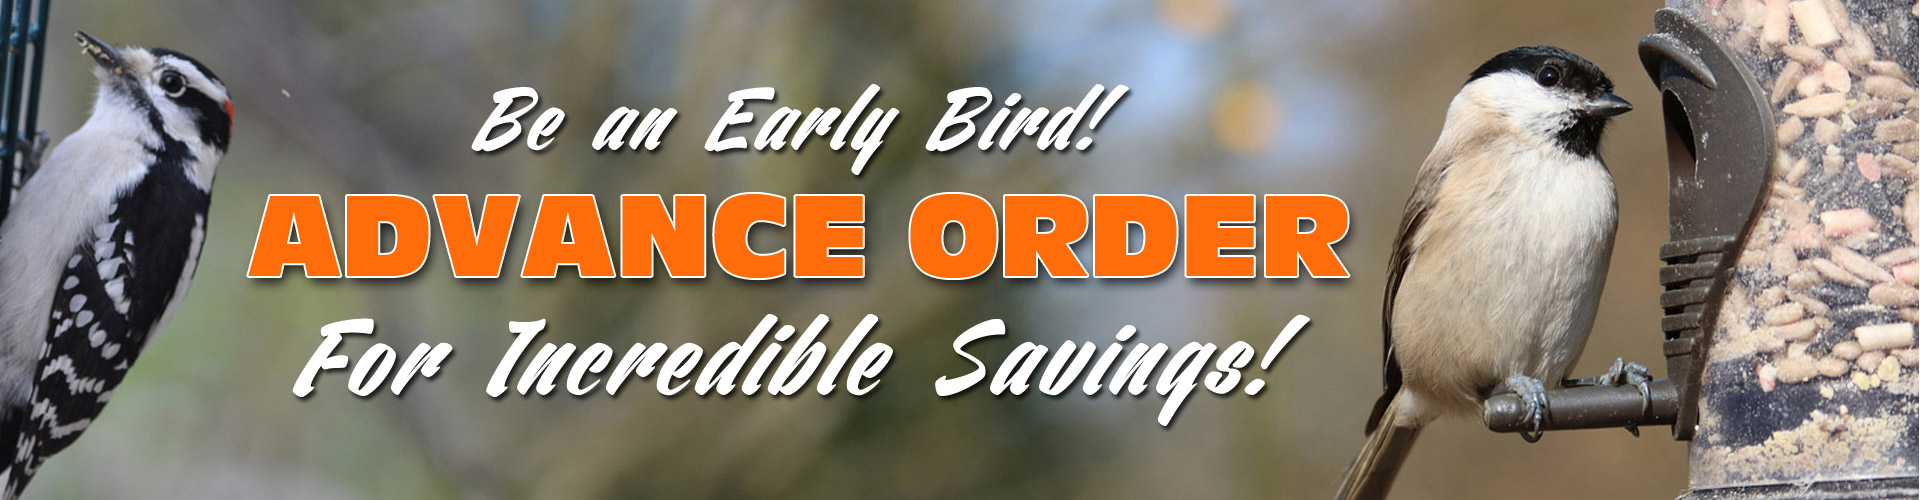 Advanced bird food sale banner